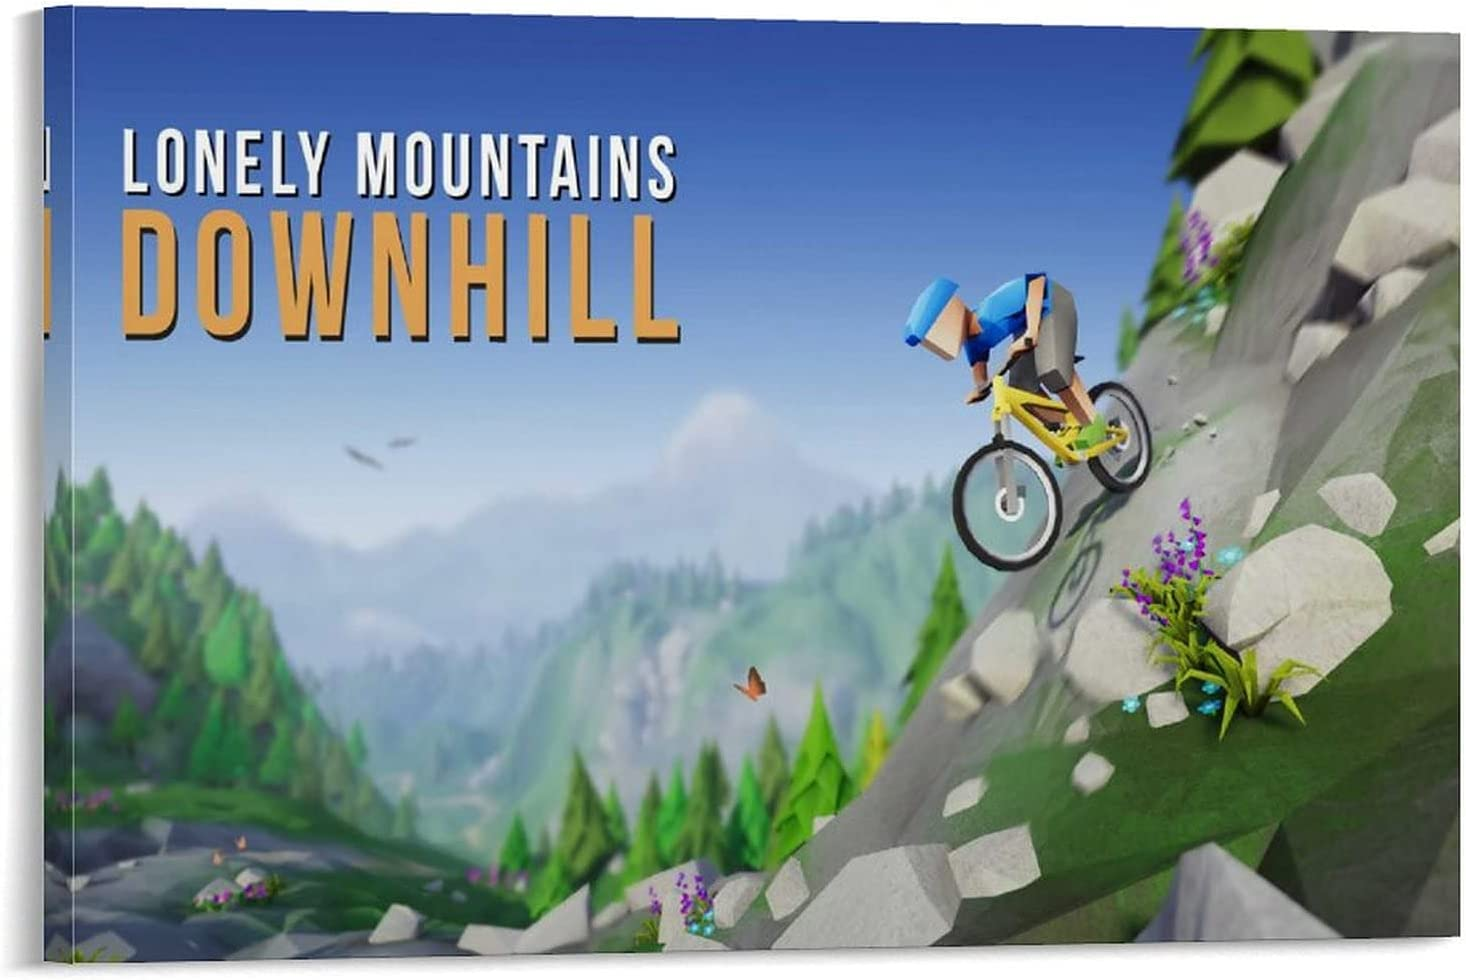 ASDSN Lonely Mountains Downhill Decorative Jacksonville Credence Mall Painting Poster Offic